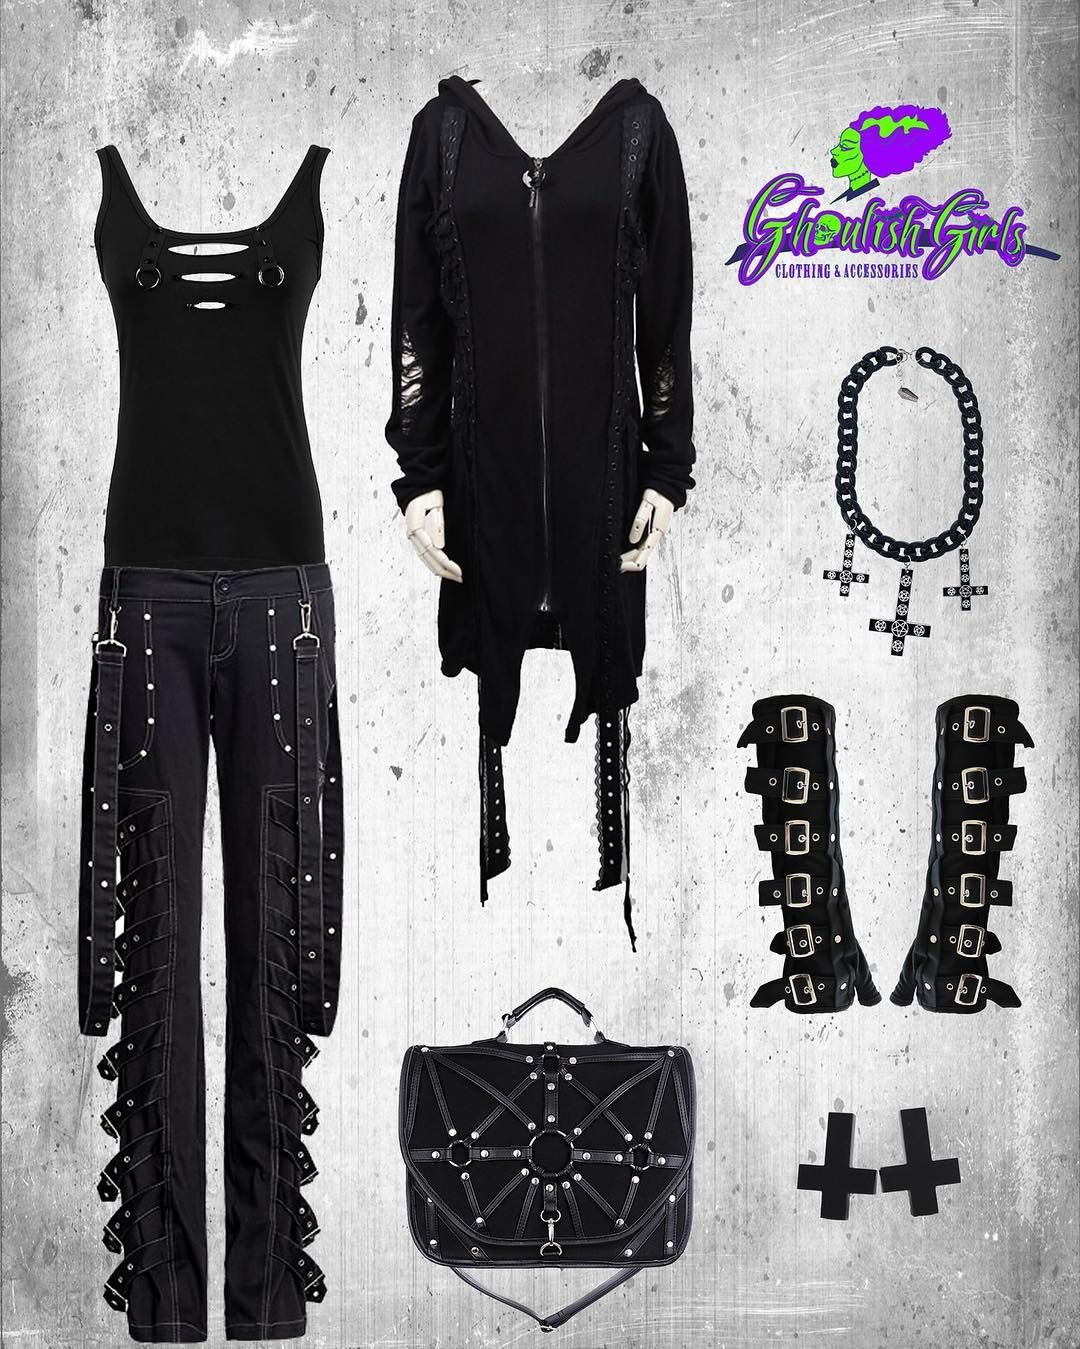 05c317f0cf79 This unisex outfit embraces the street wear style with punk   goth  influences. Featuring clothing from Punk Rave